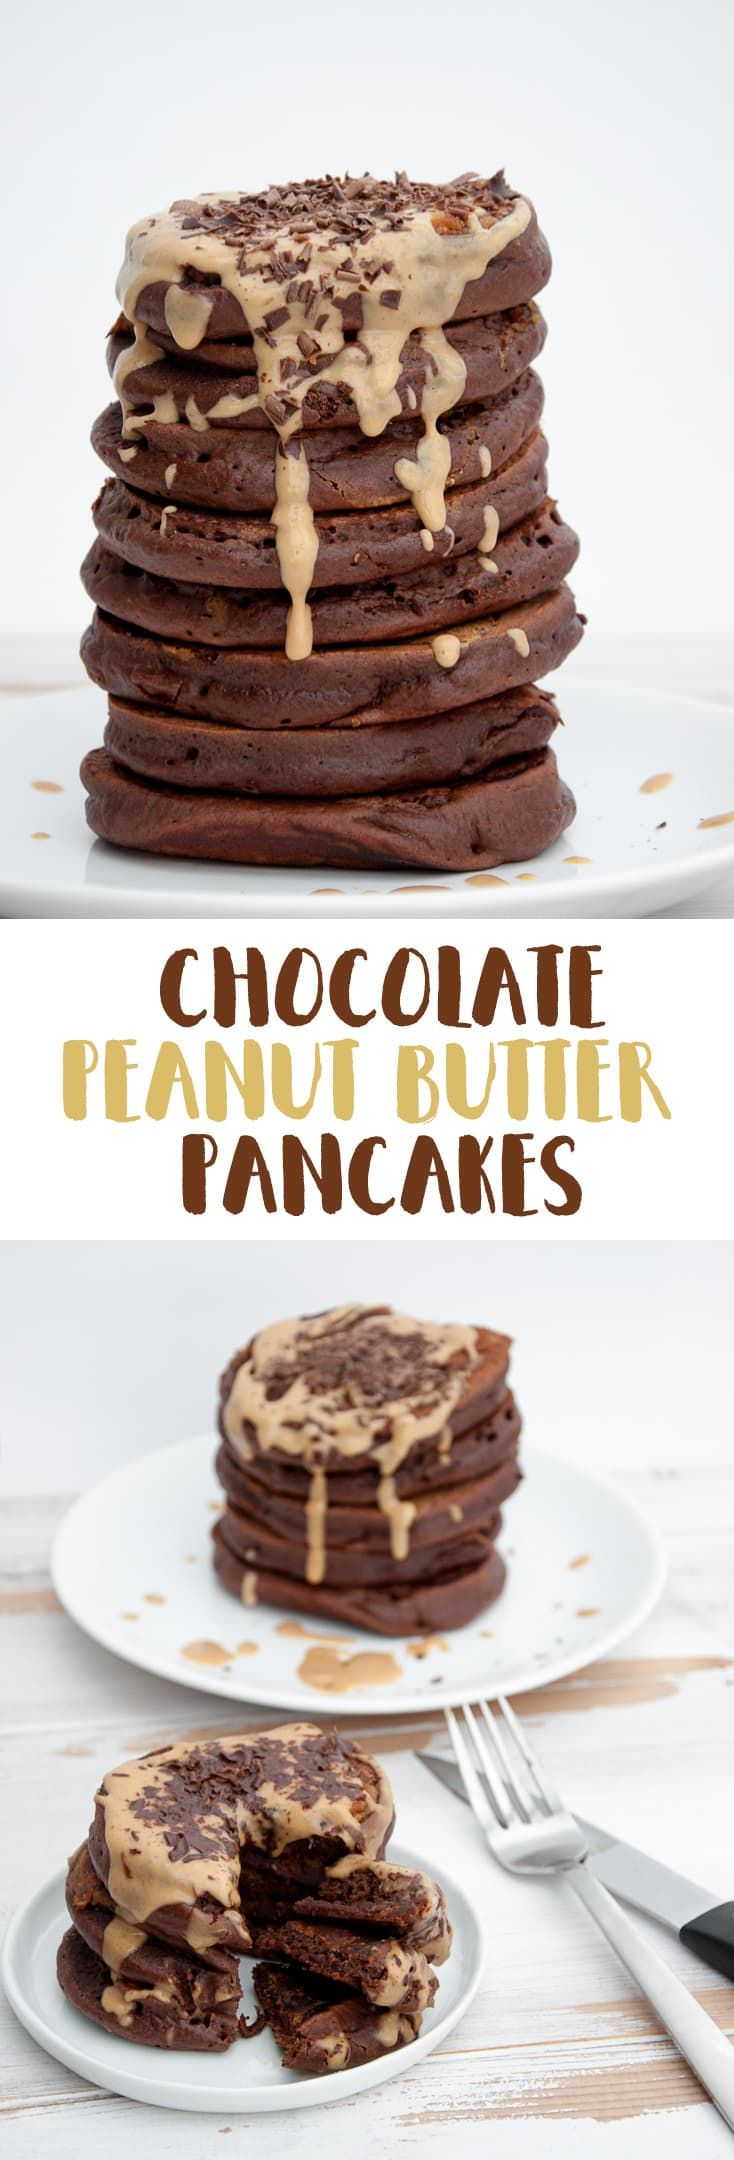 Vegan Chocolate Peanut Butter Pancakes via @elephantasticv (Gluten Free Recipes For Dessert)